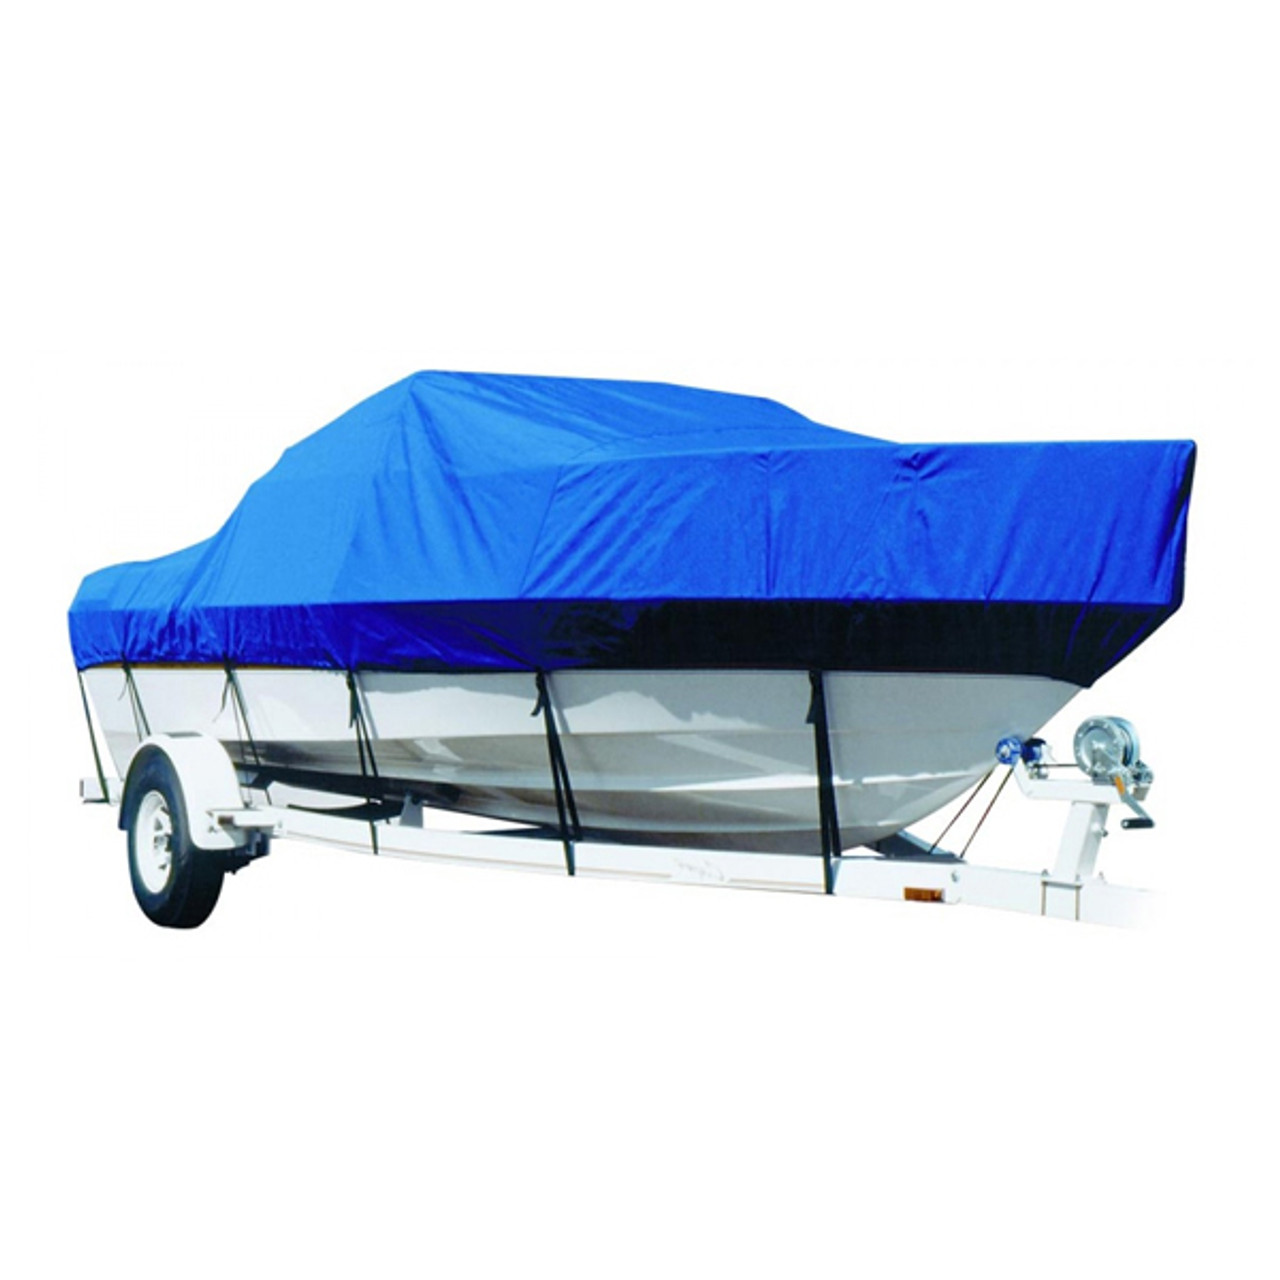 BLUE BOAT COVER FITS REINELL//BEACHCRAFT 192 MAGNUM CUDDY 1988-1997